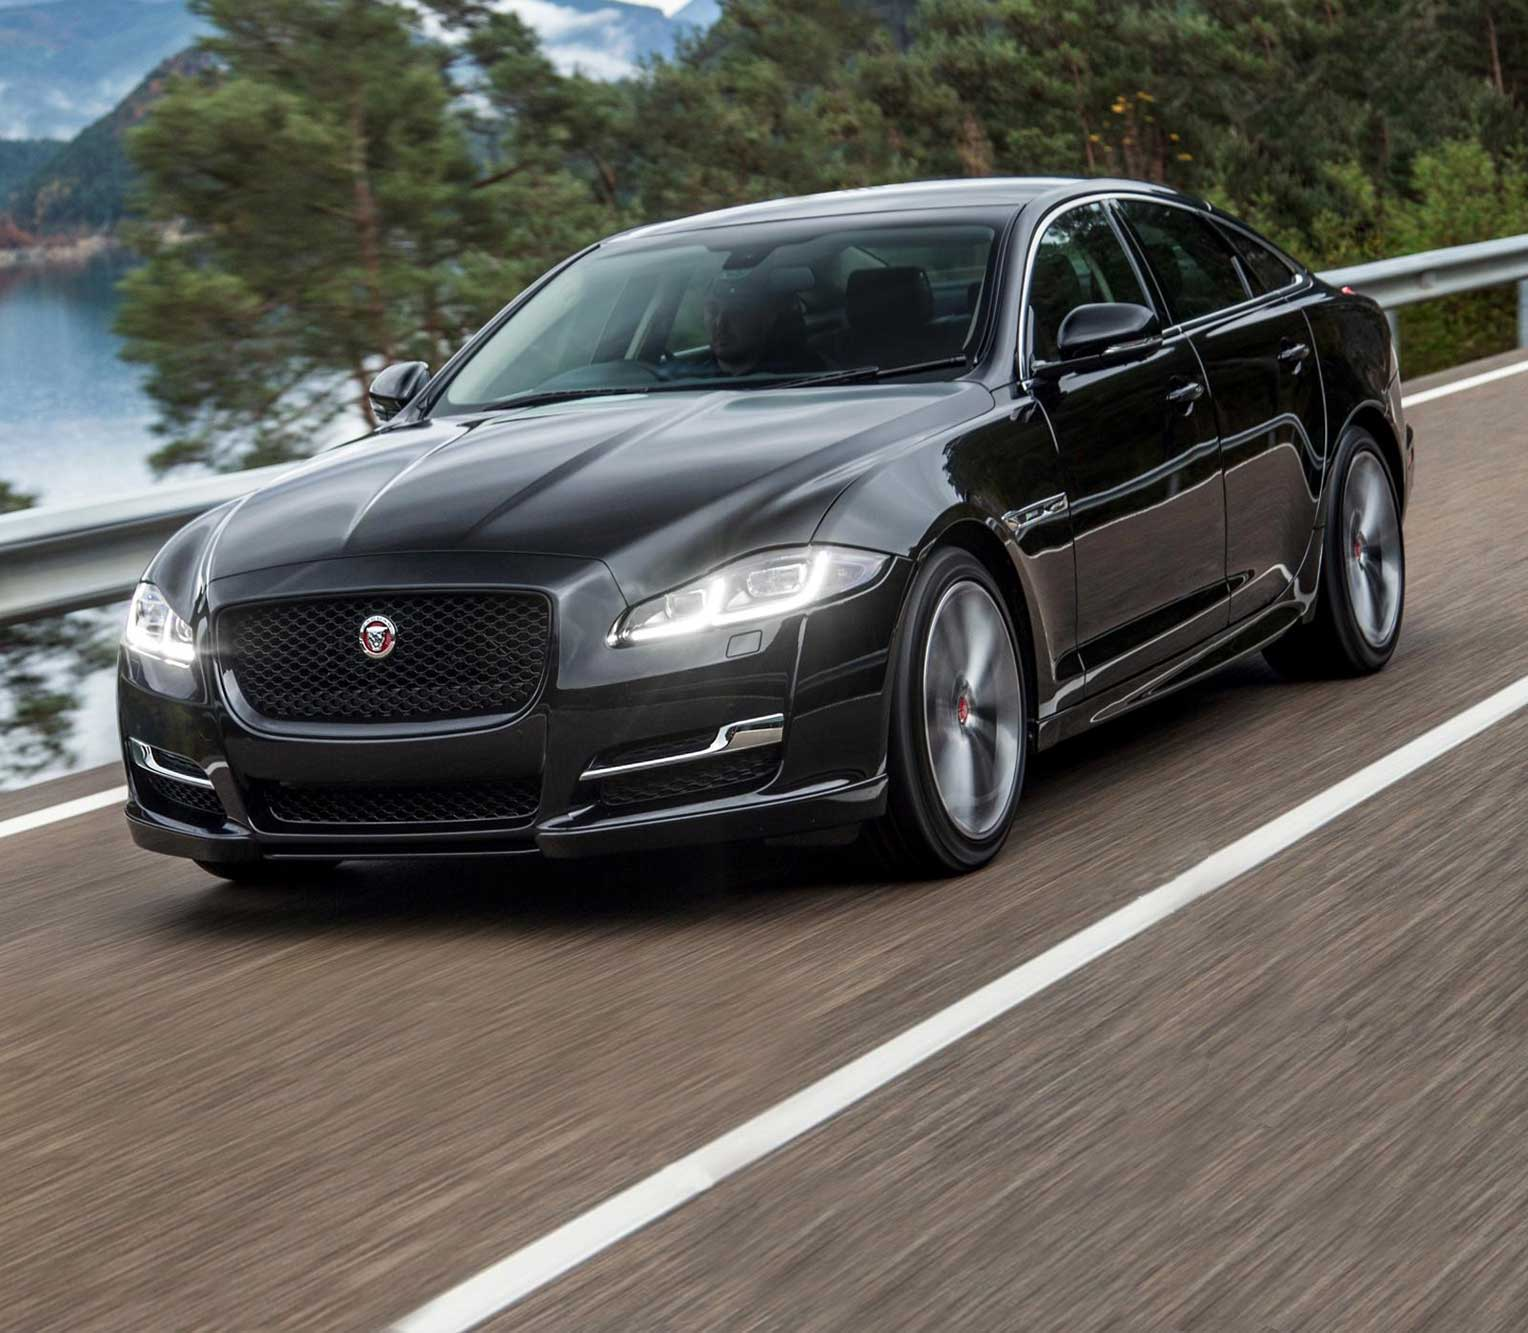 Price Of New Jaguar: Jaguar XJL Car Rental